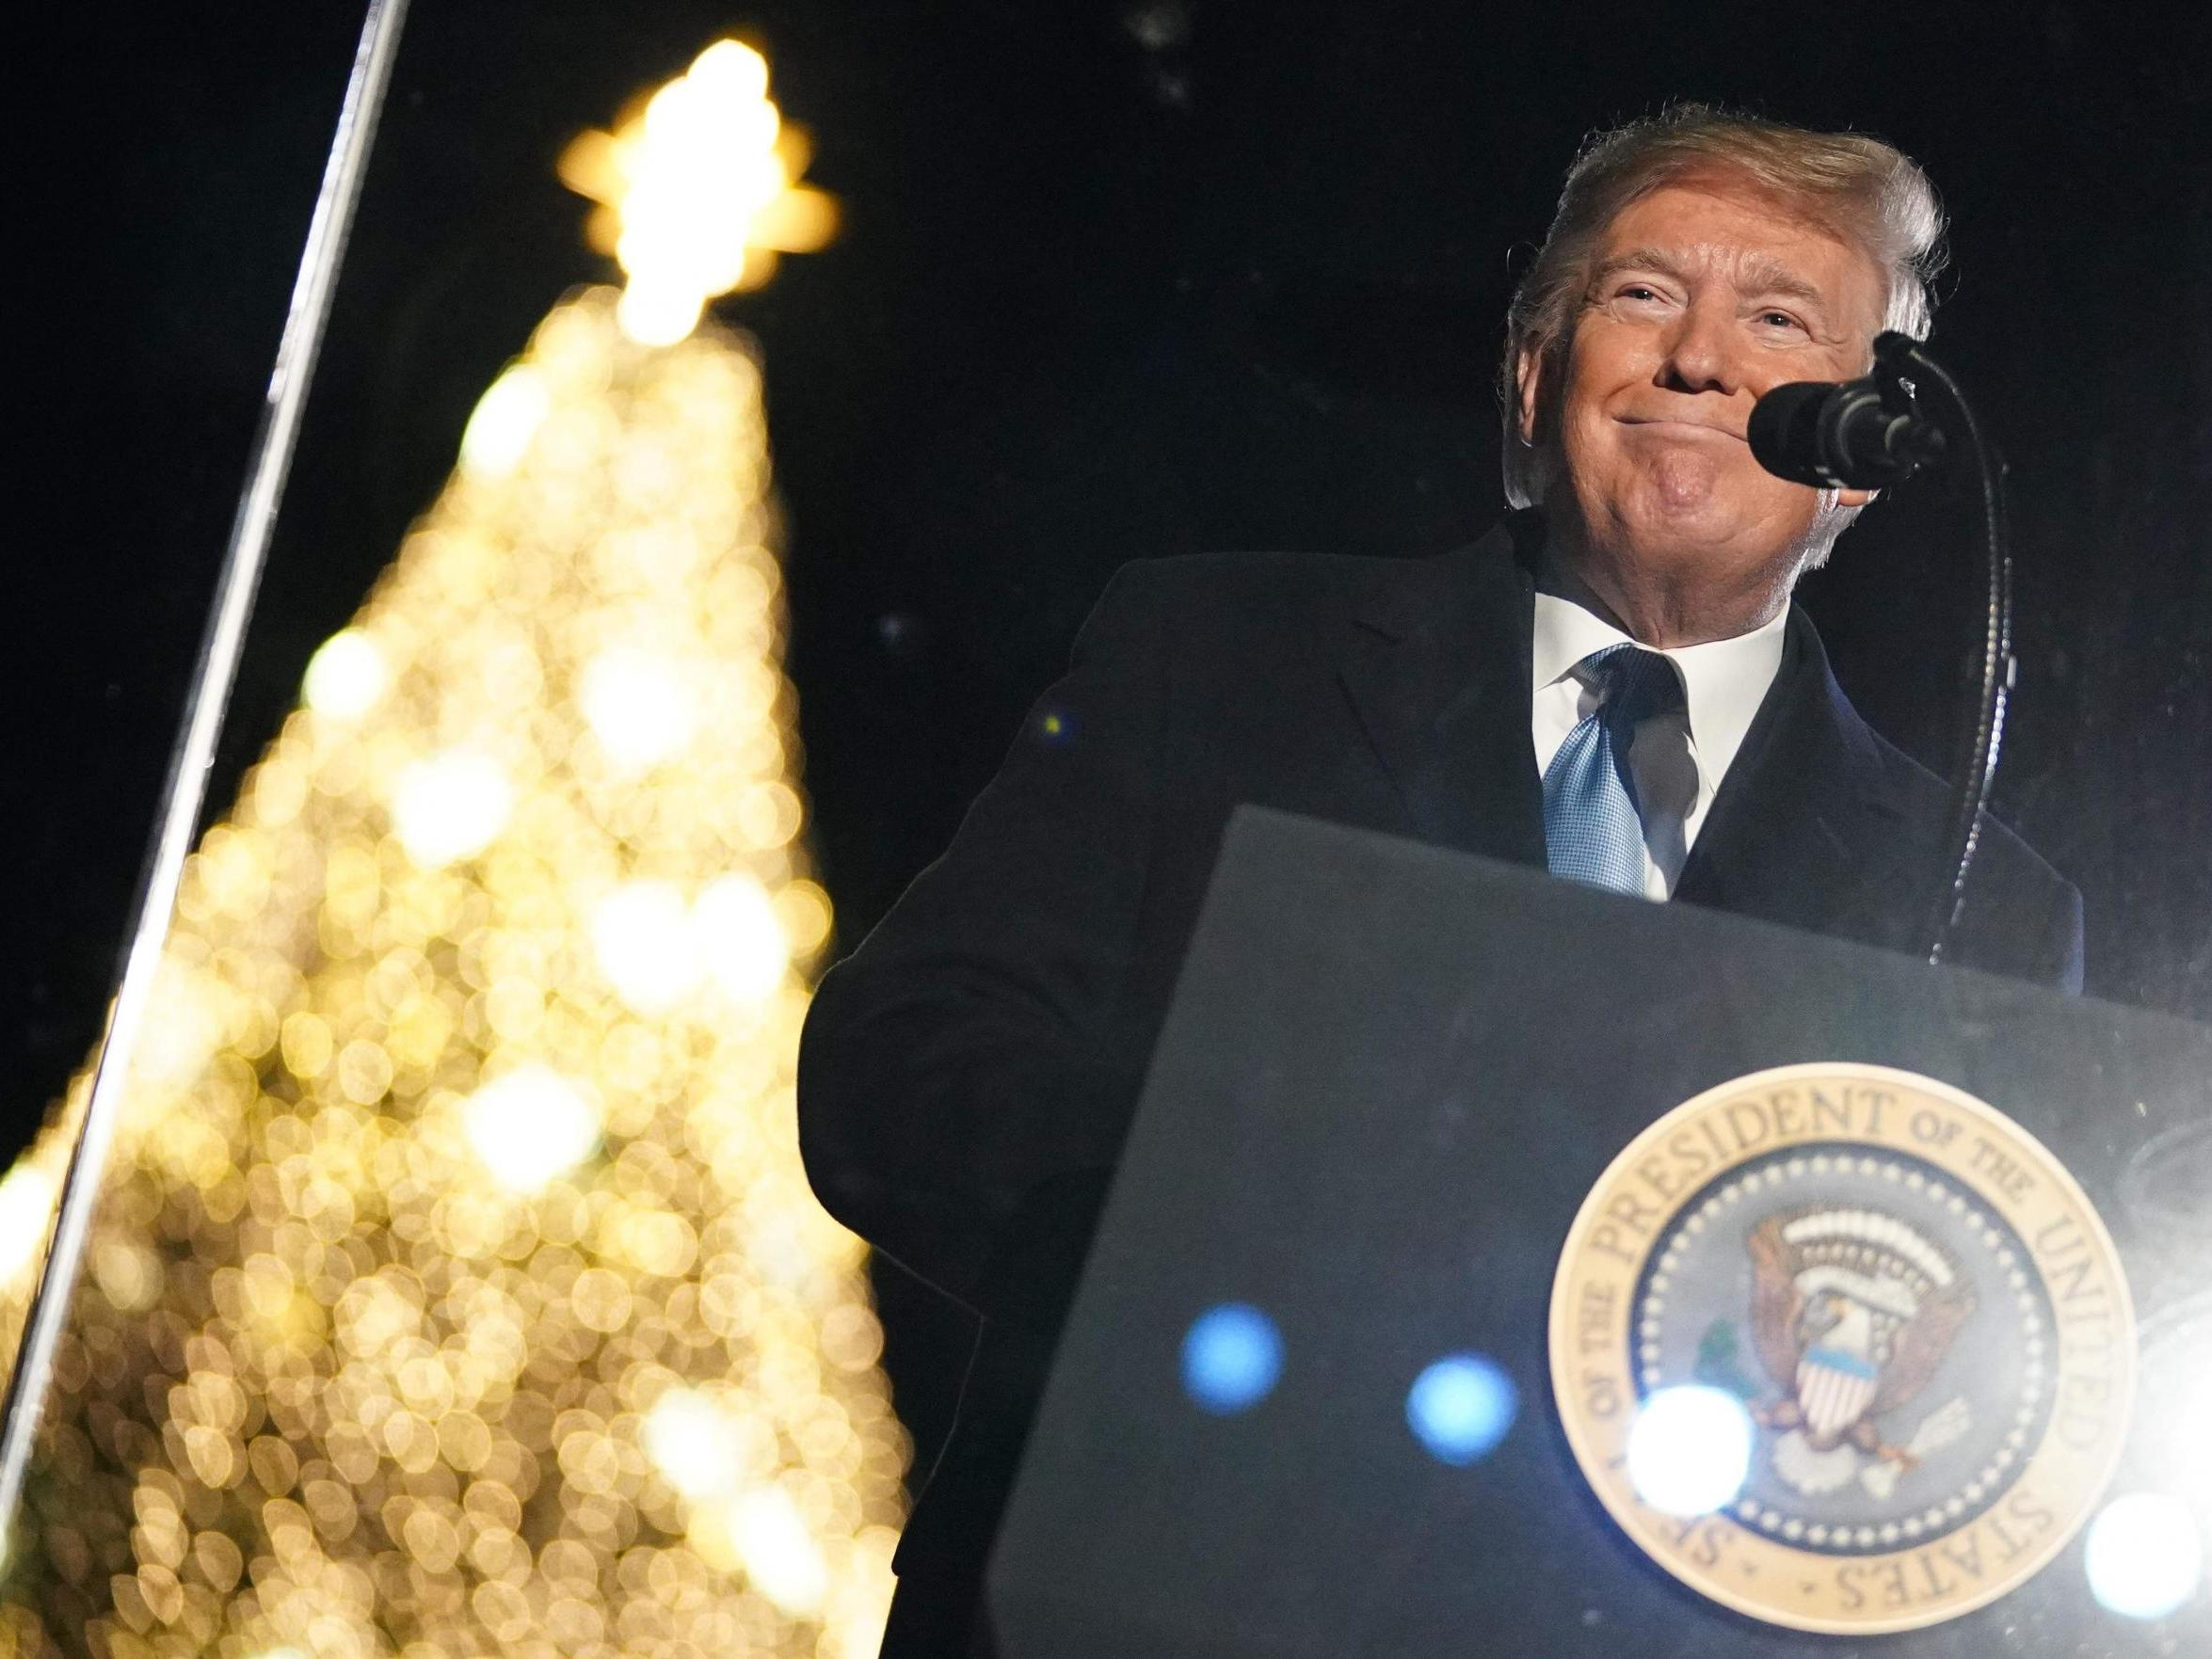 Happy Holidays: What are the origins of the alternative Christmas greeting - and why does Trump object to it?